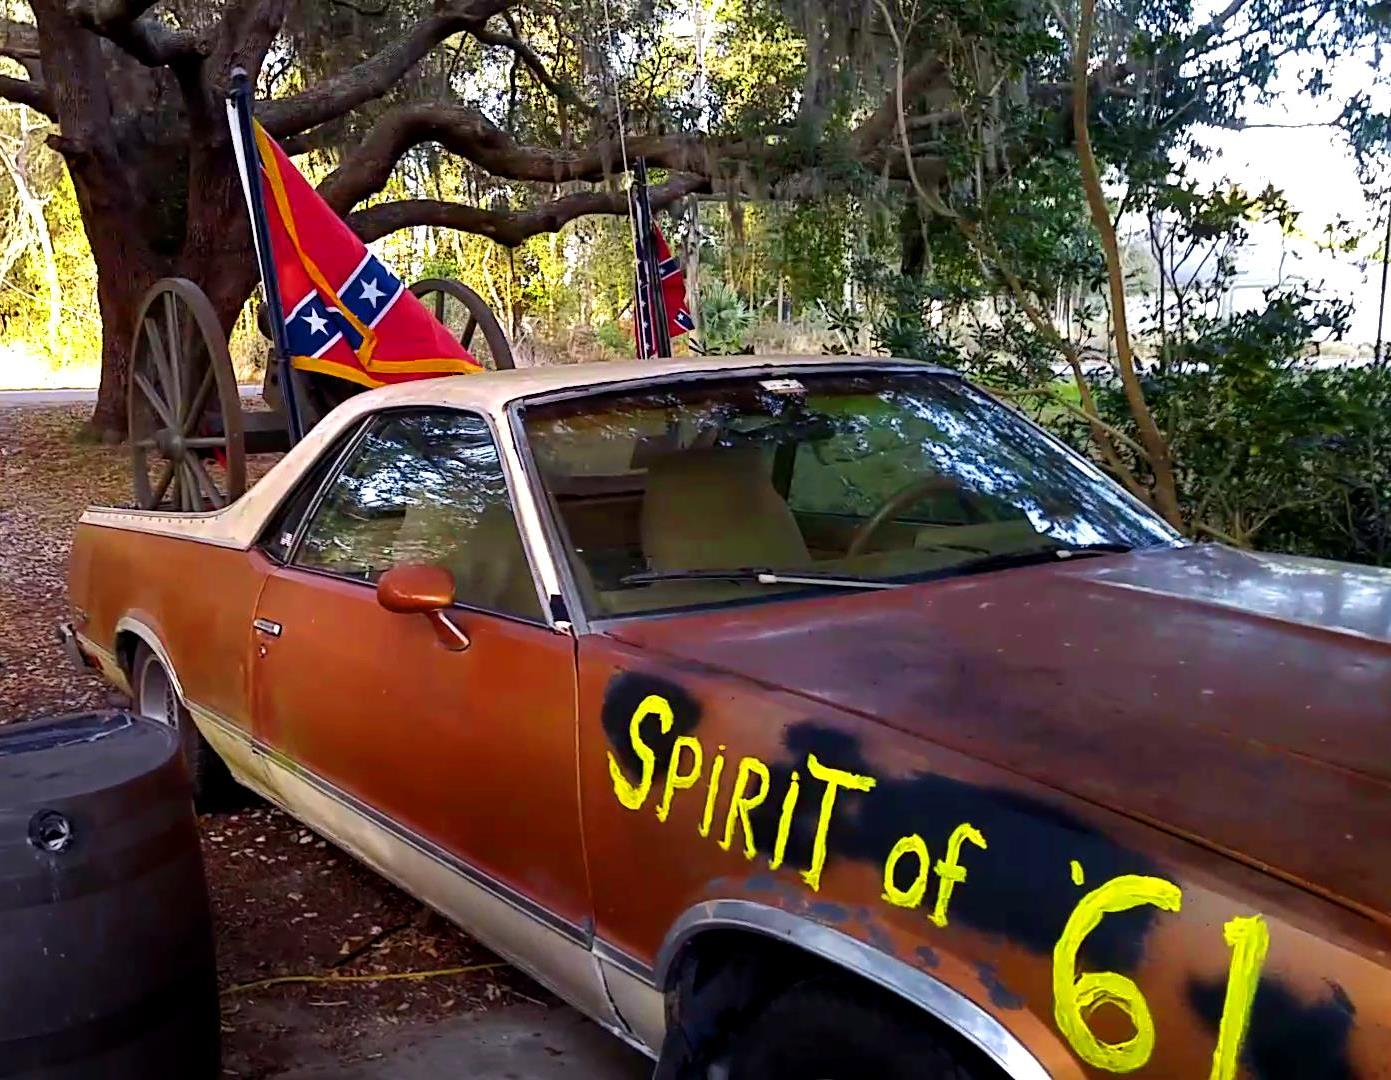 El Camino, 'Spirit of '61